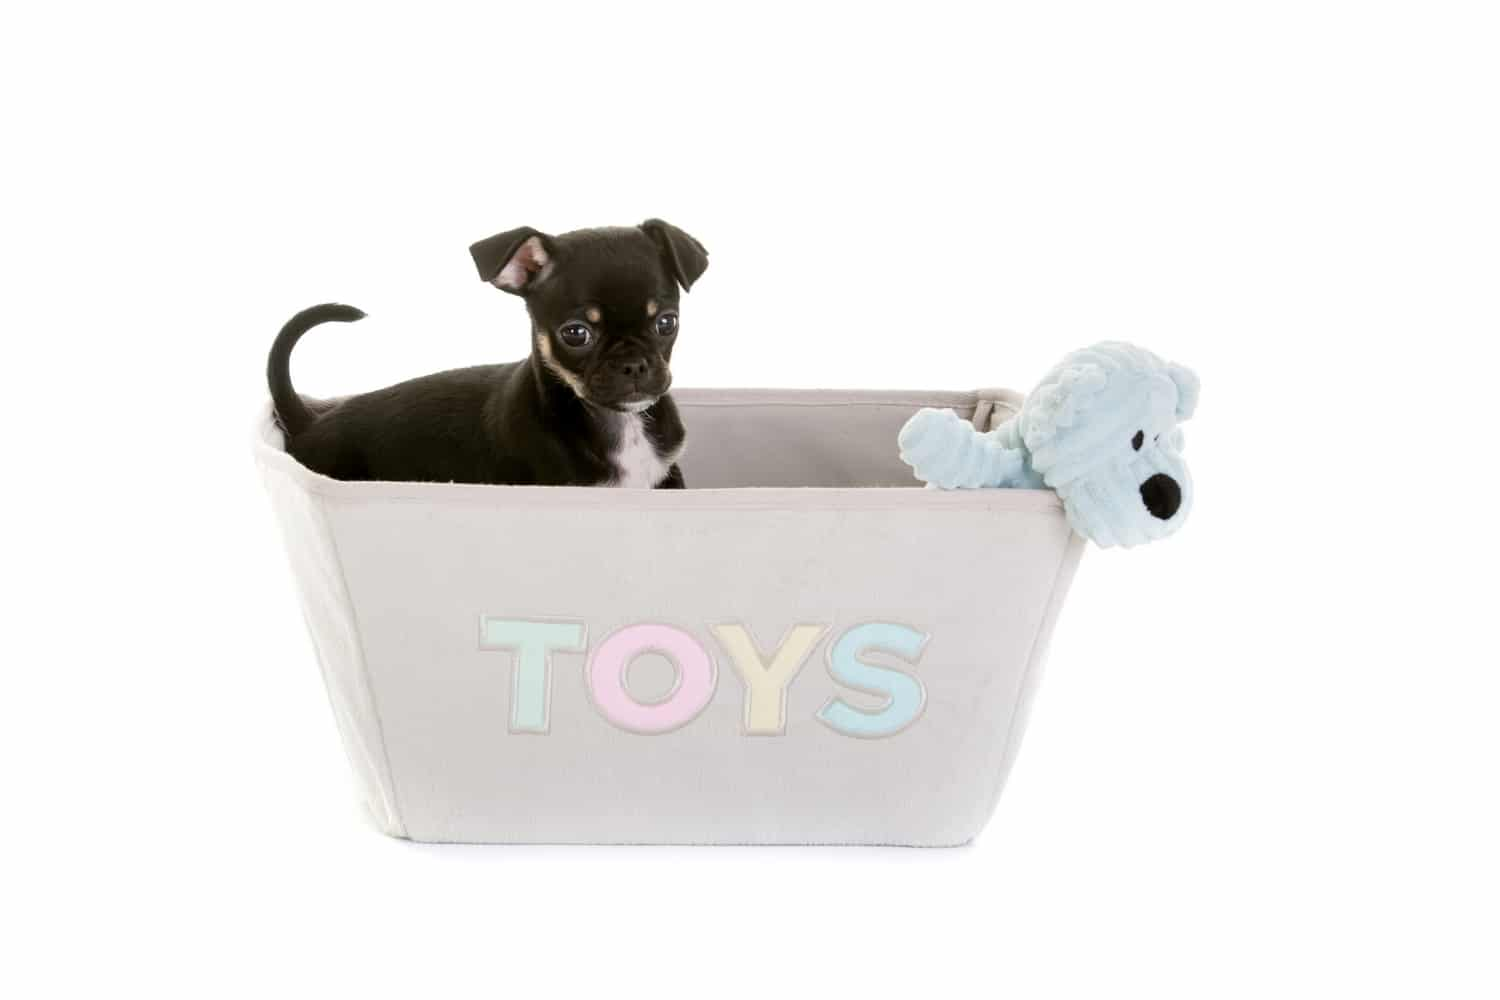 Chug dog in a toy basket